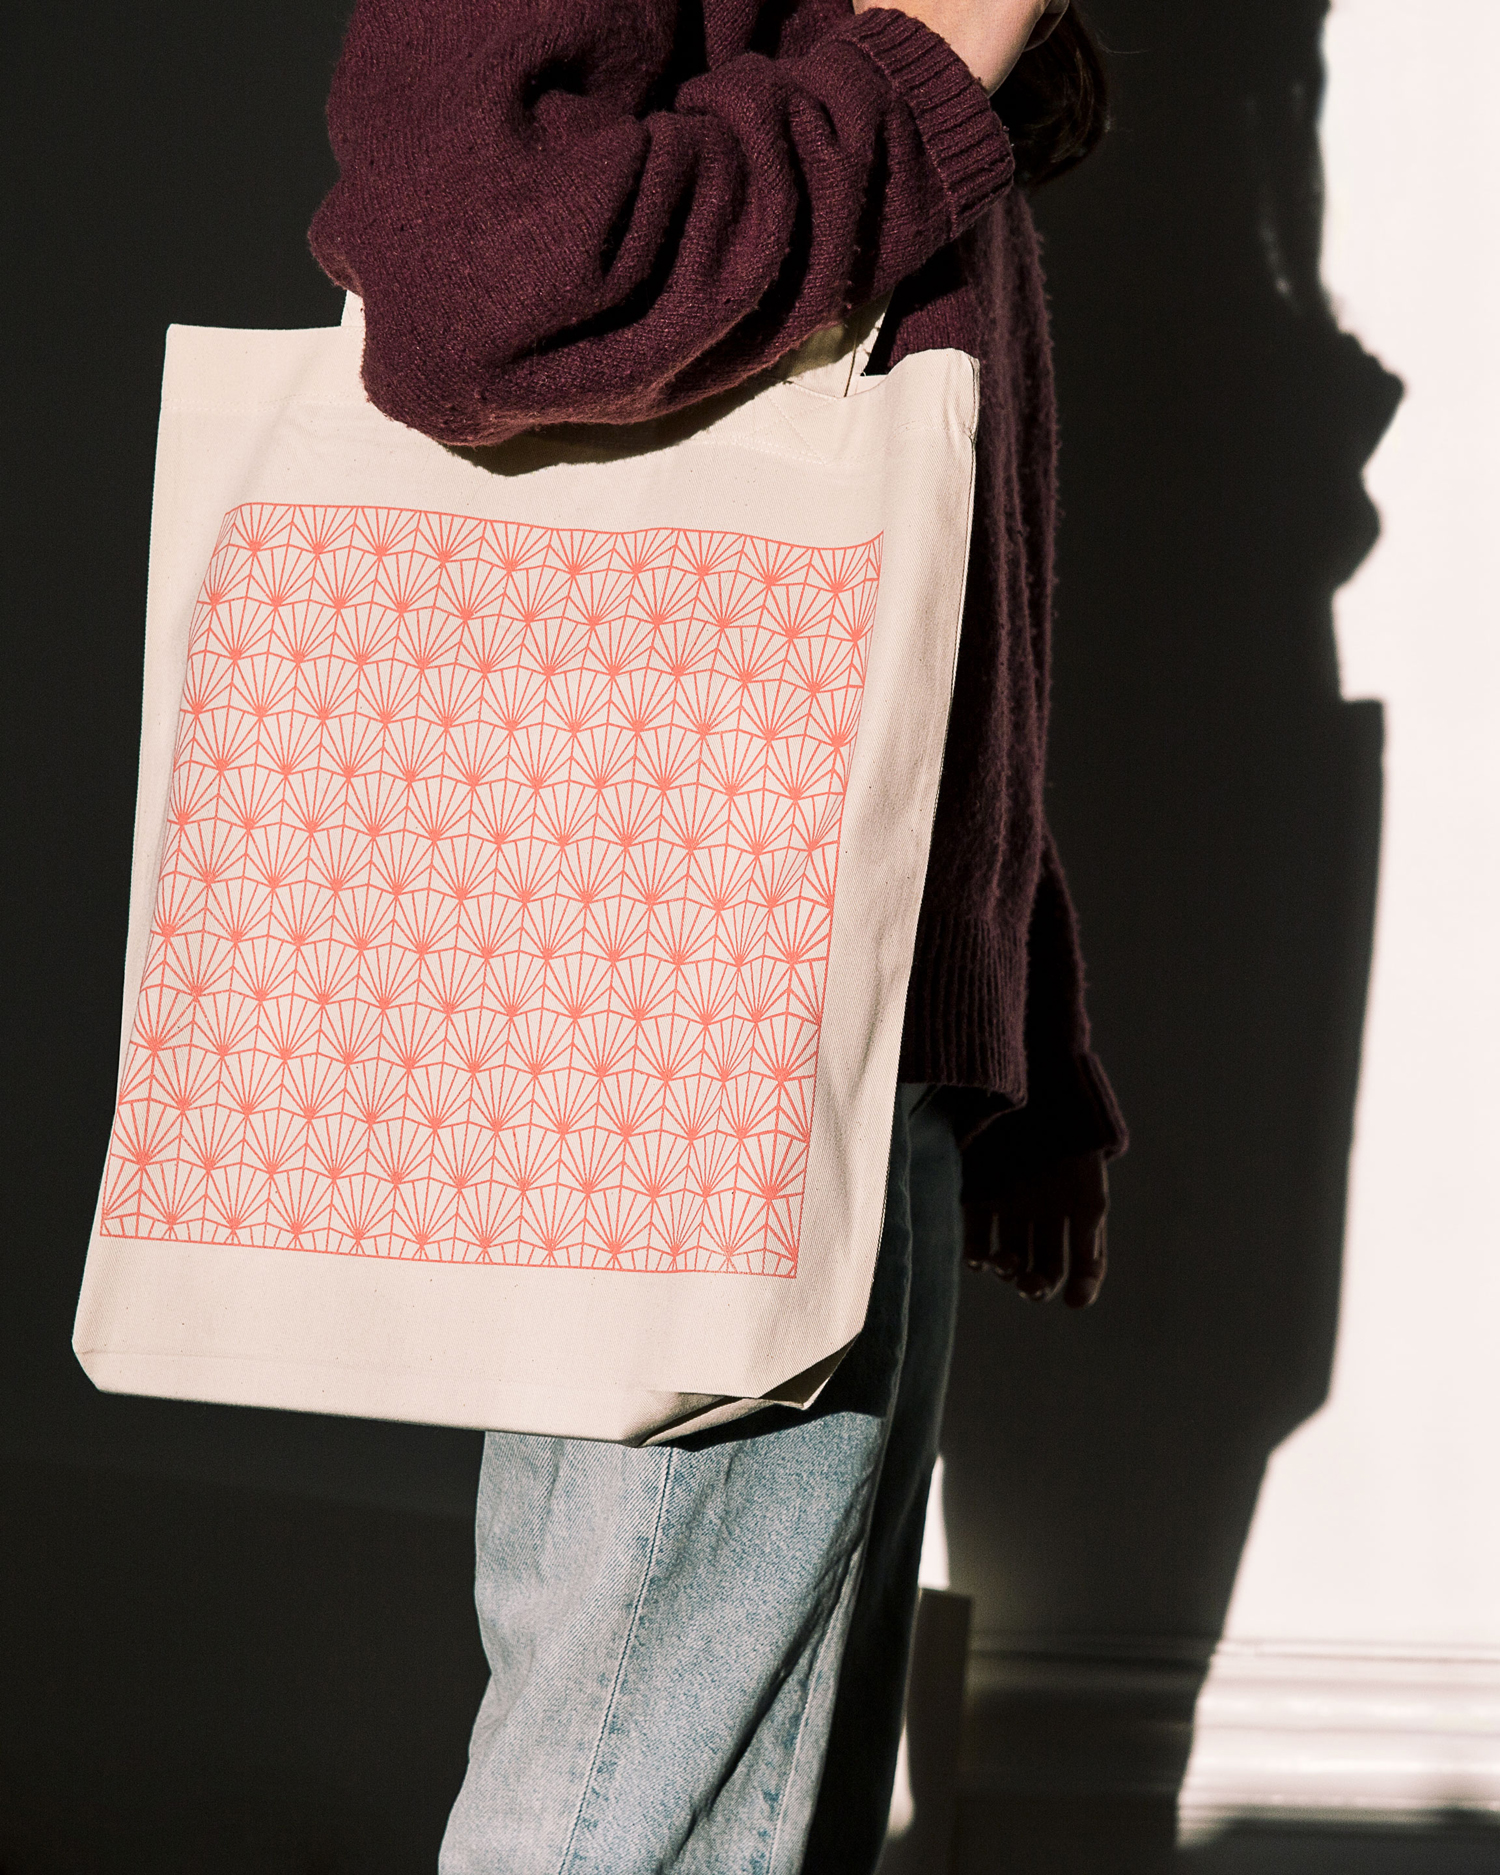 Branded tote bag by Stockholm-based Bedow for Swedish media company Fab Media